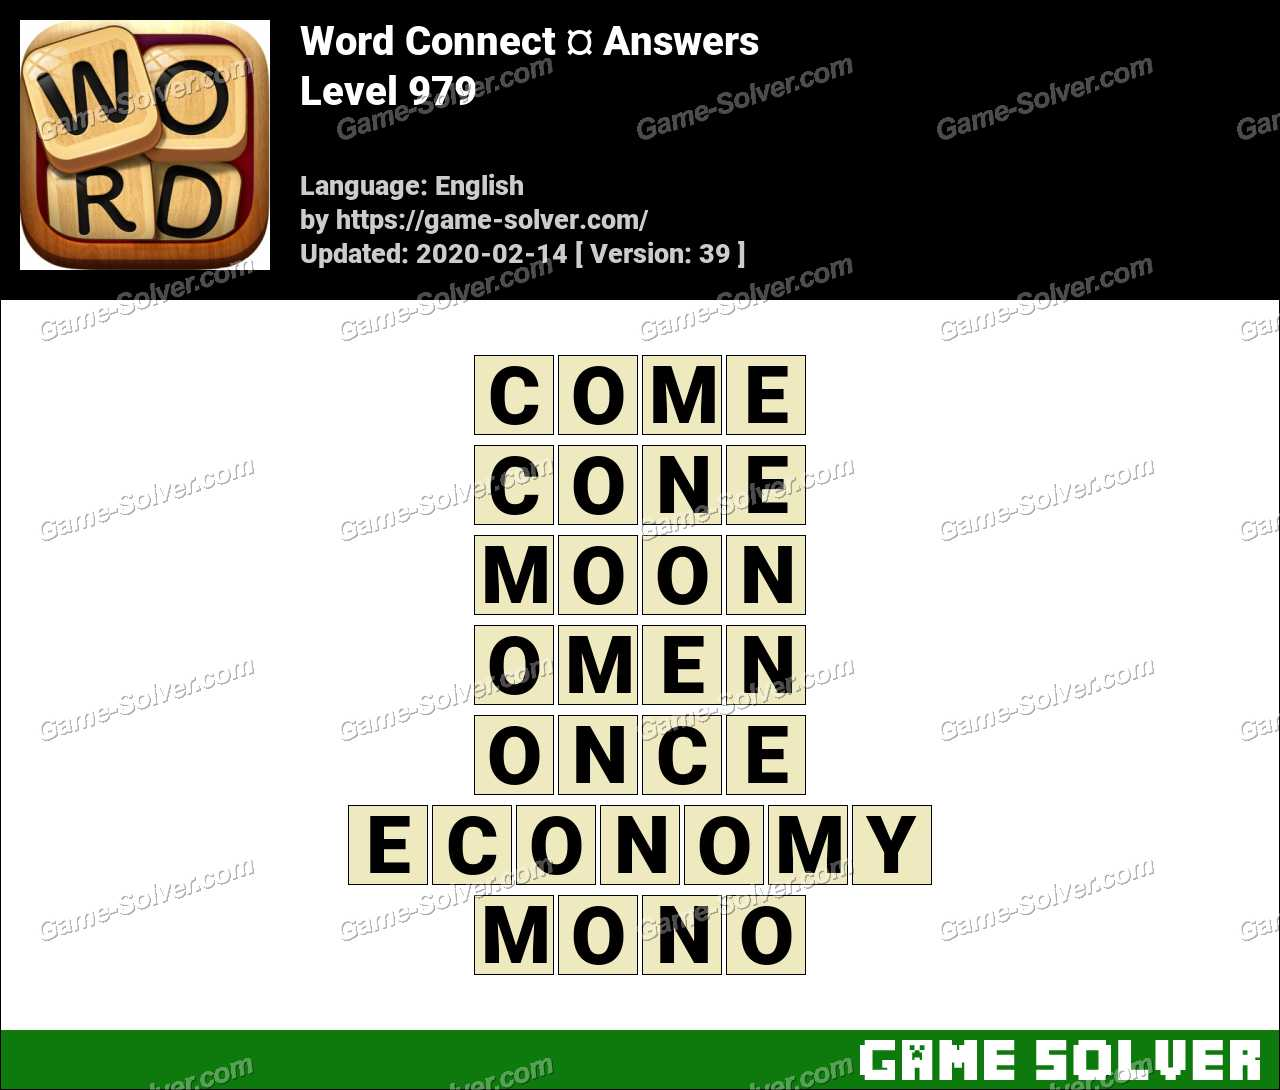 Word Connect Level 979 Answers